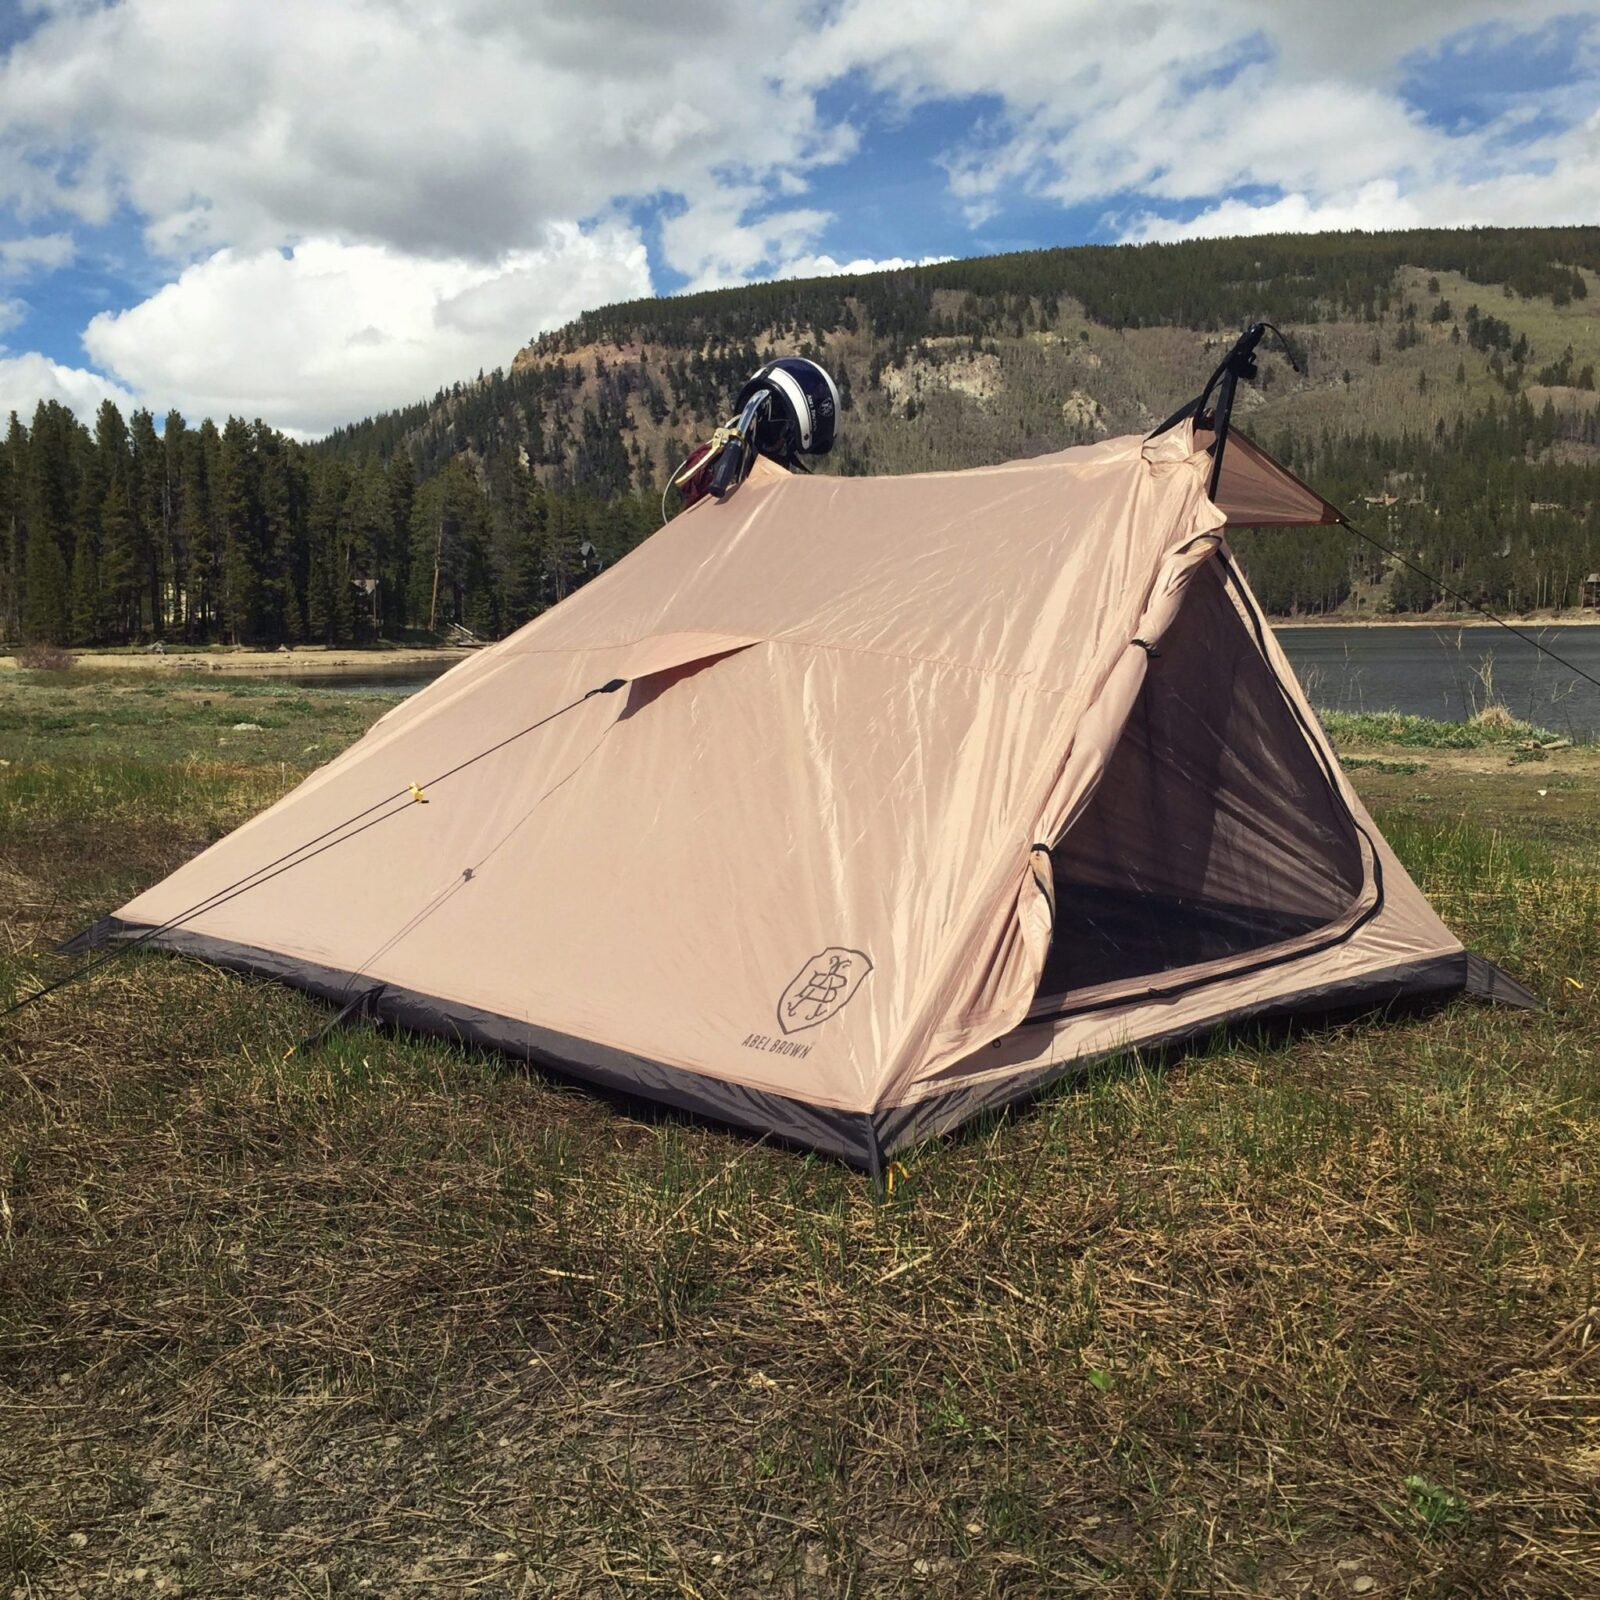 & Nomad 2 Motorcycle Tent